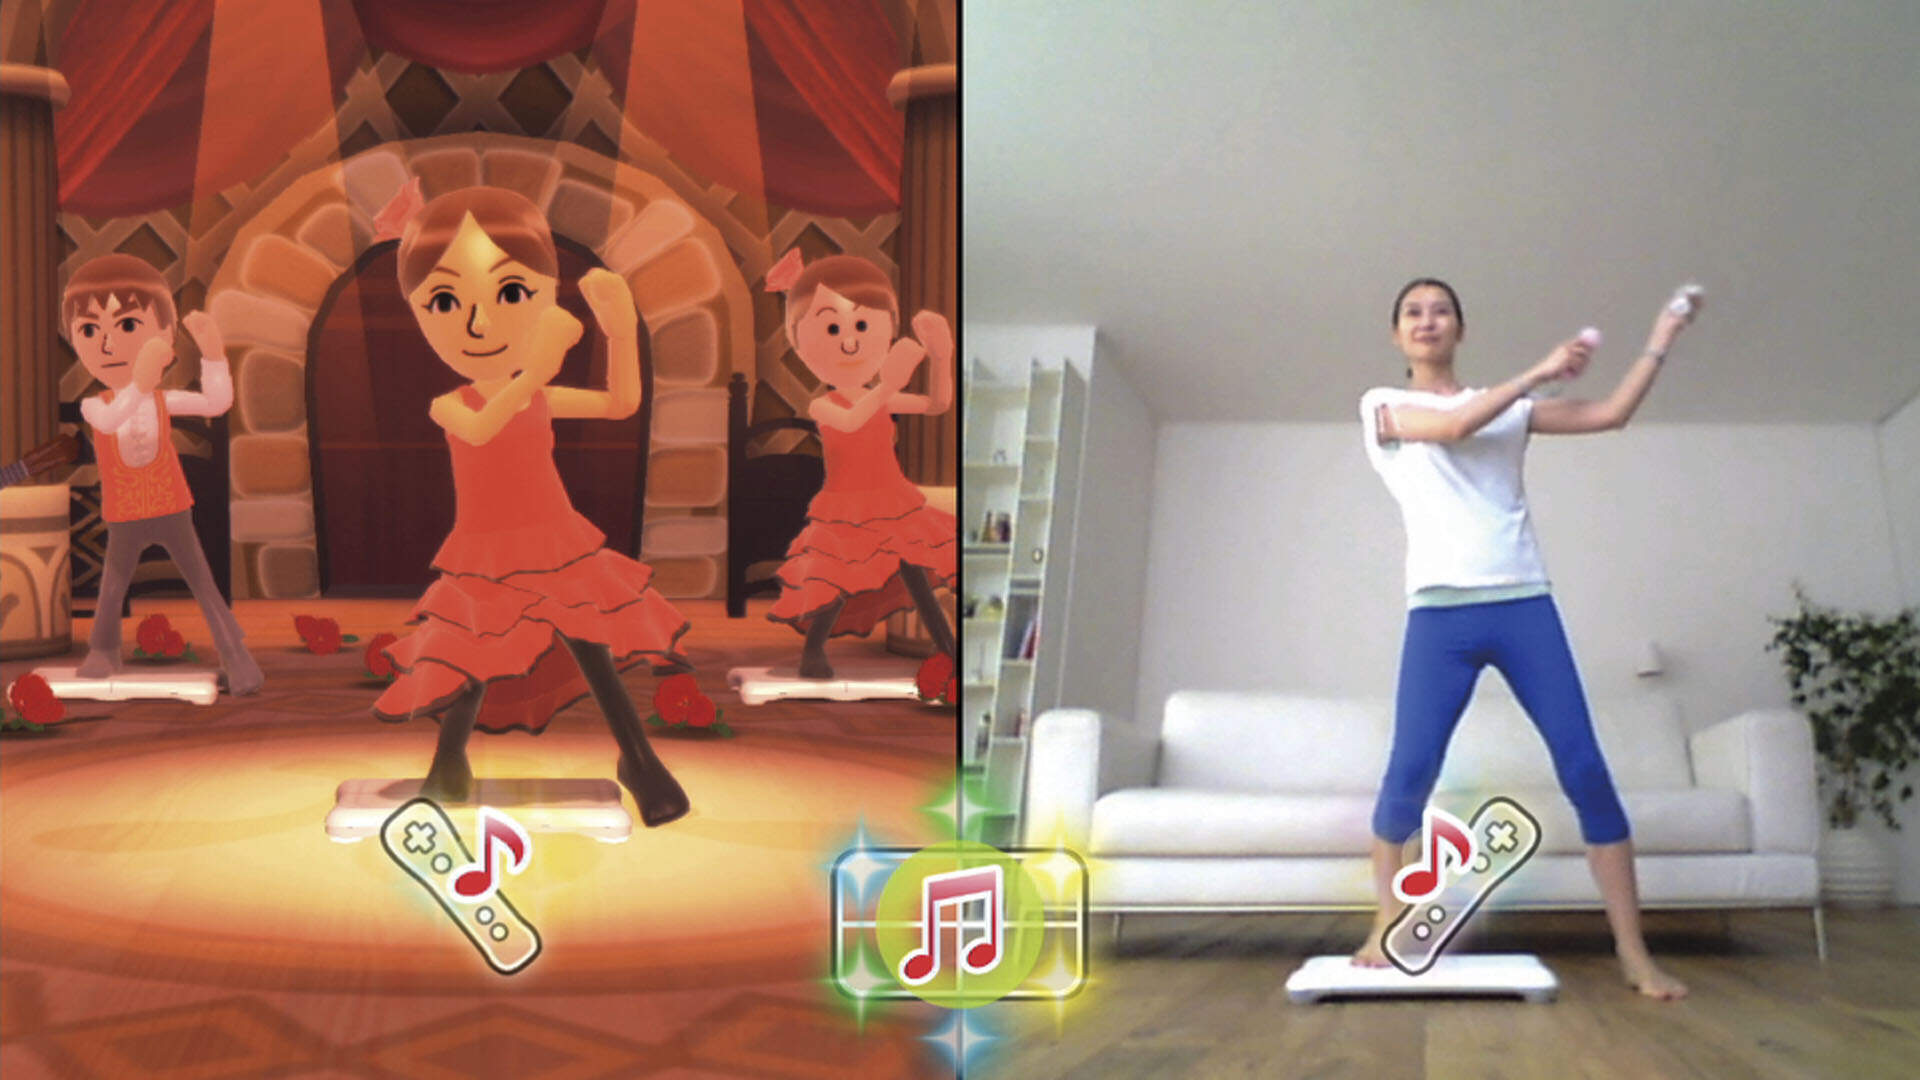 How Does Wii Fit U Compare to Good Old-Fashioned Exercise?